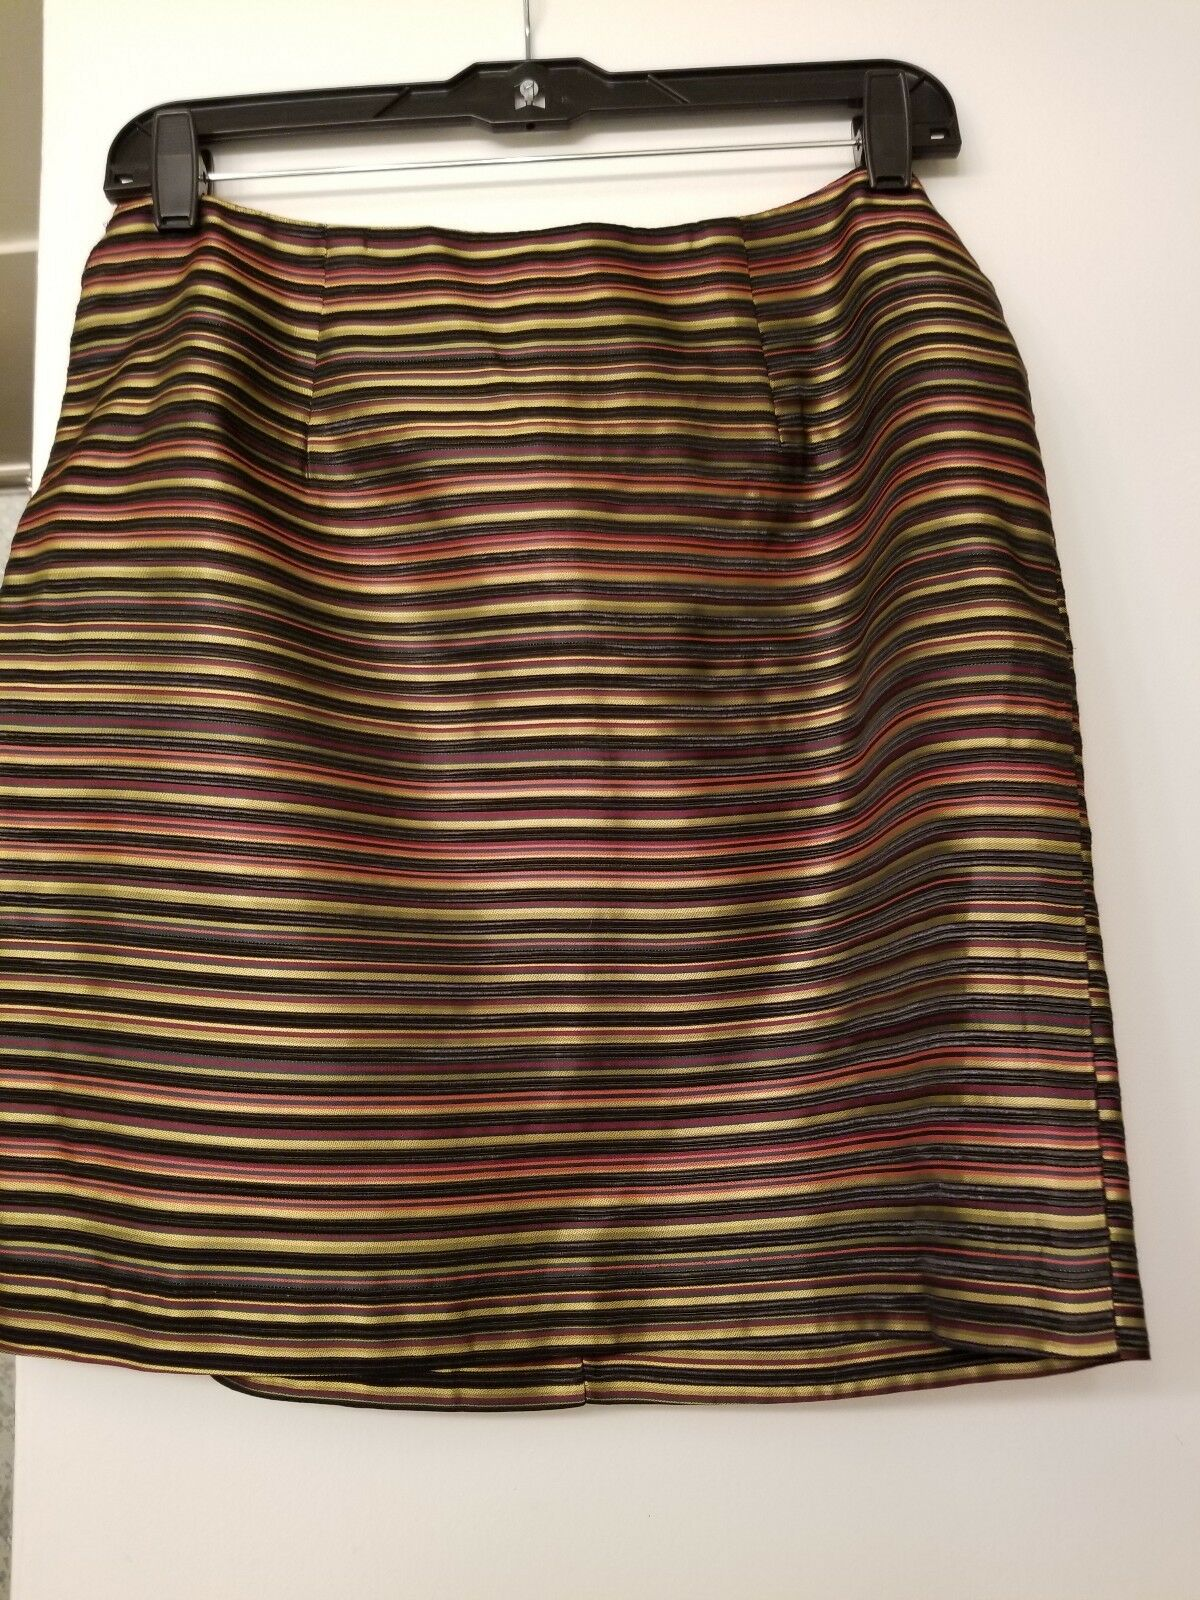 Womens Short Skirt Size 8. Excellent condition. Multi colors. Perfect for the Ho